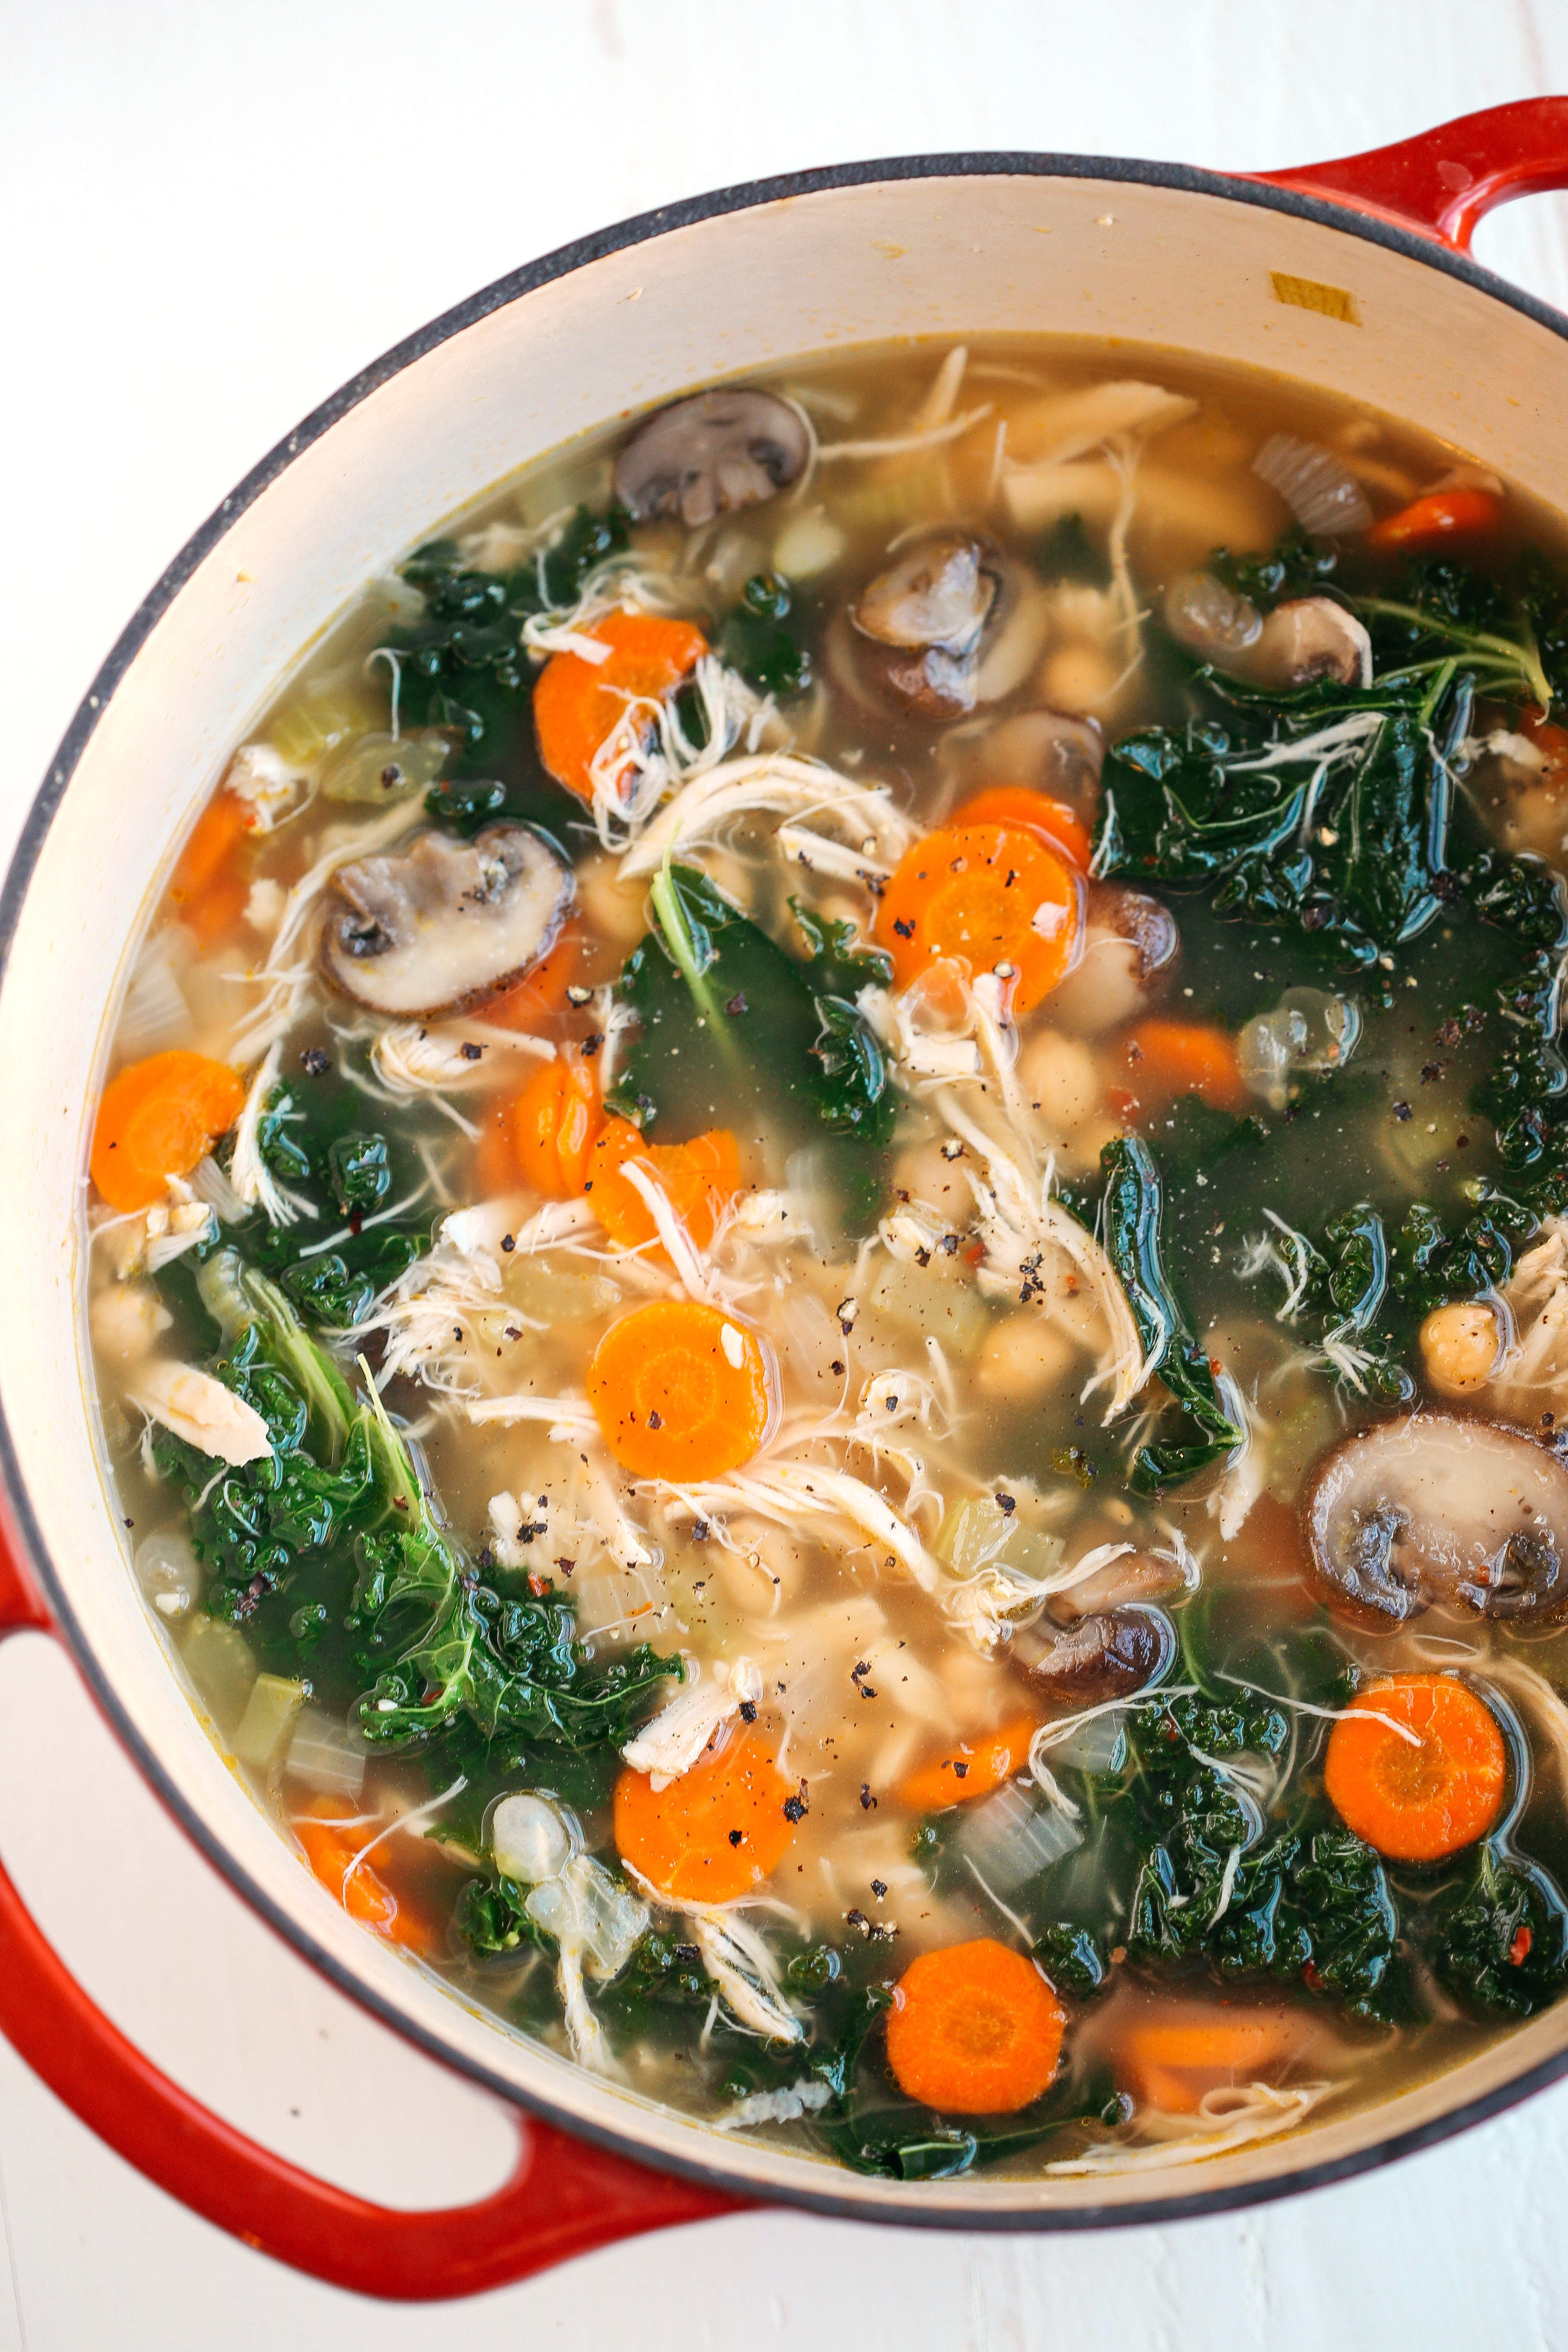 Best Healthy Soups  Top 10 Favorite Healthy Soup Recipes Eat Yourself Skinny